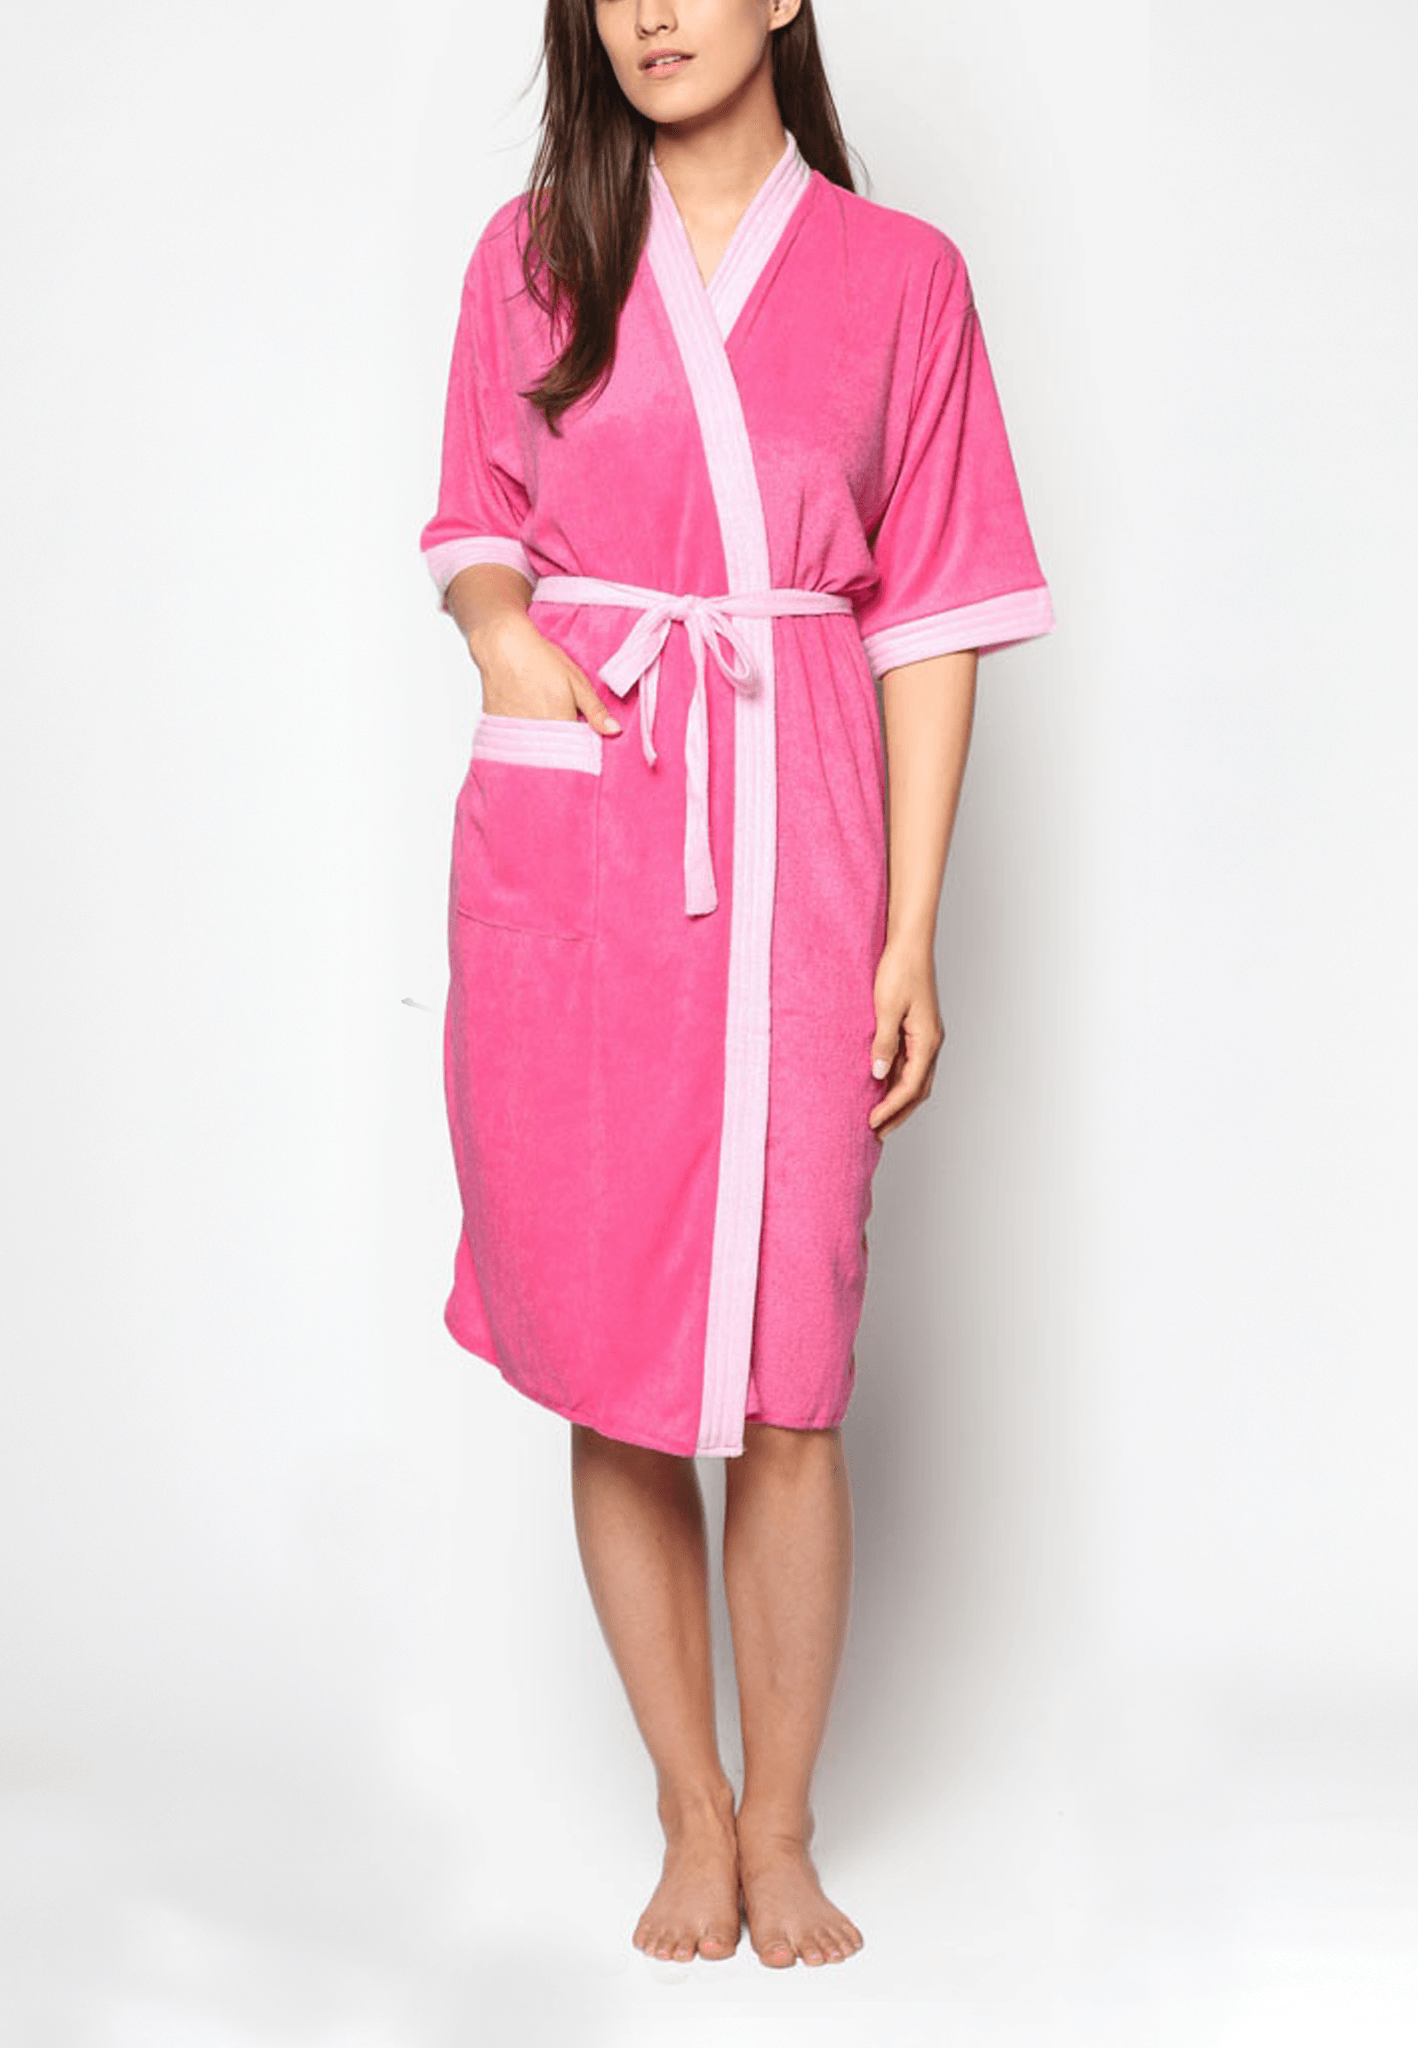 Swim Robe in Rose/ Light Pink